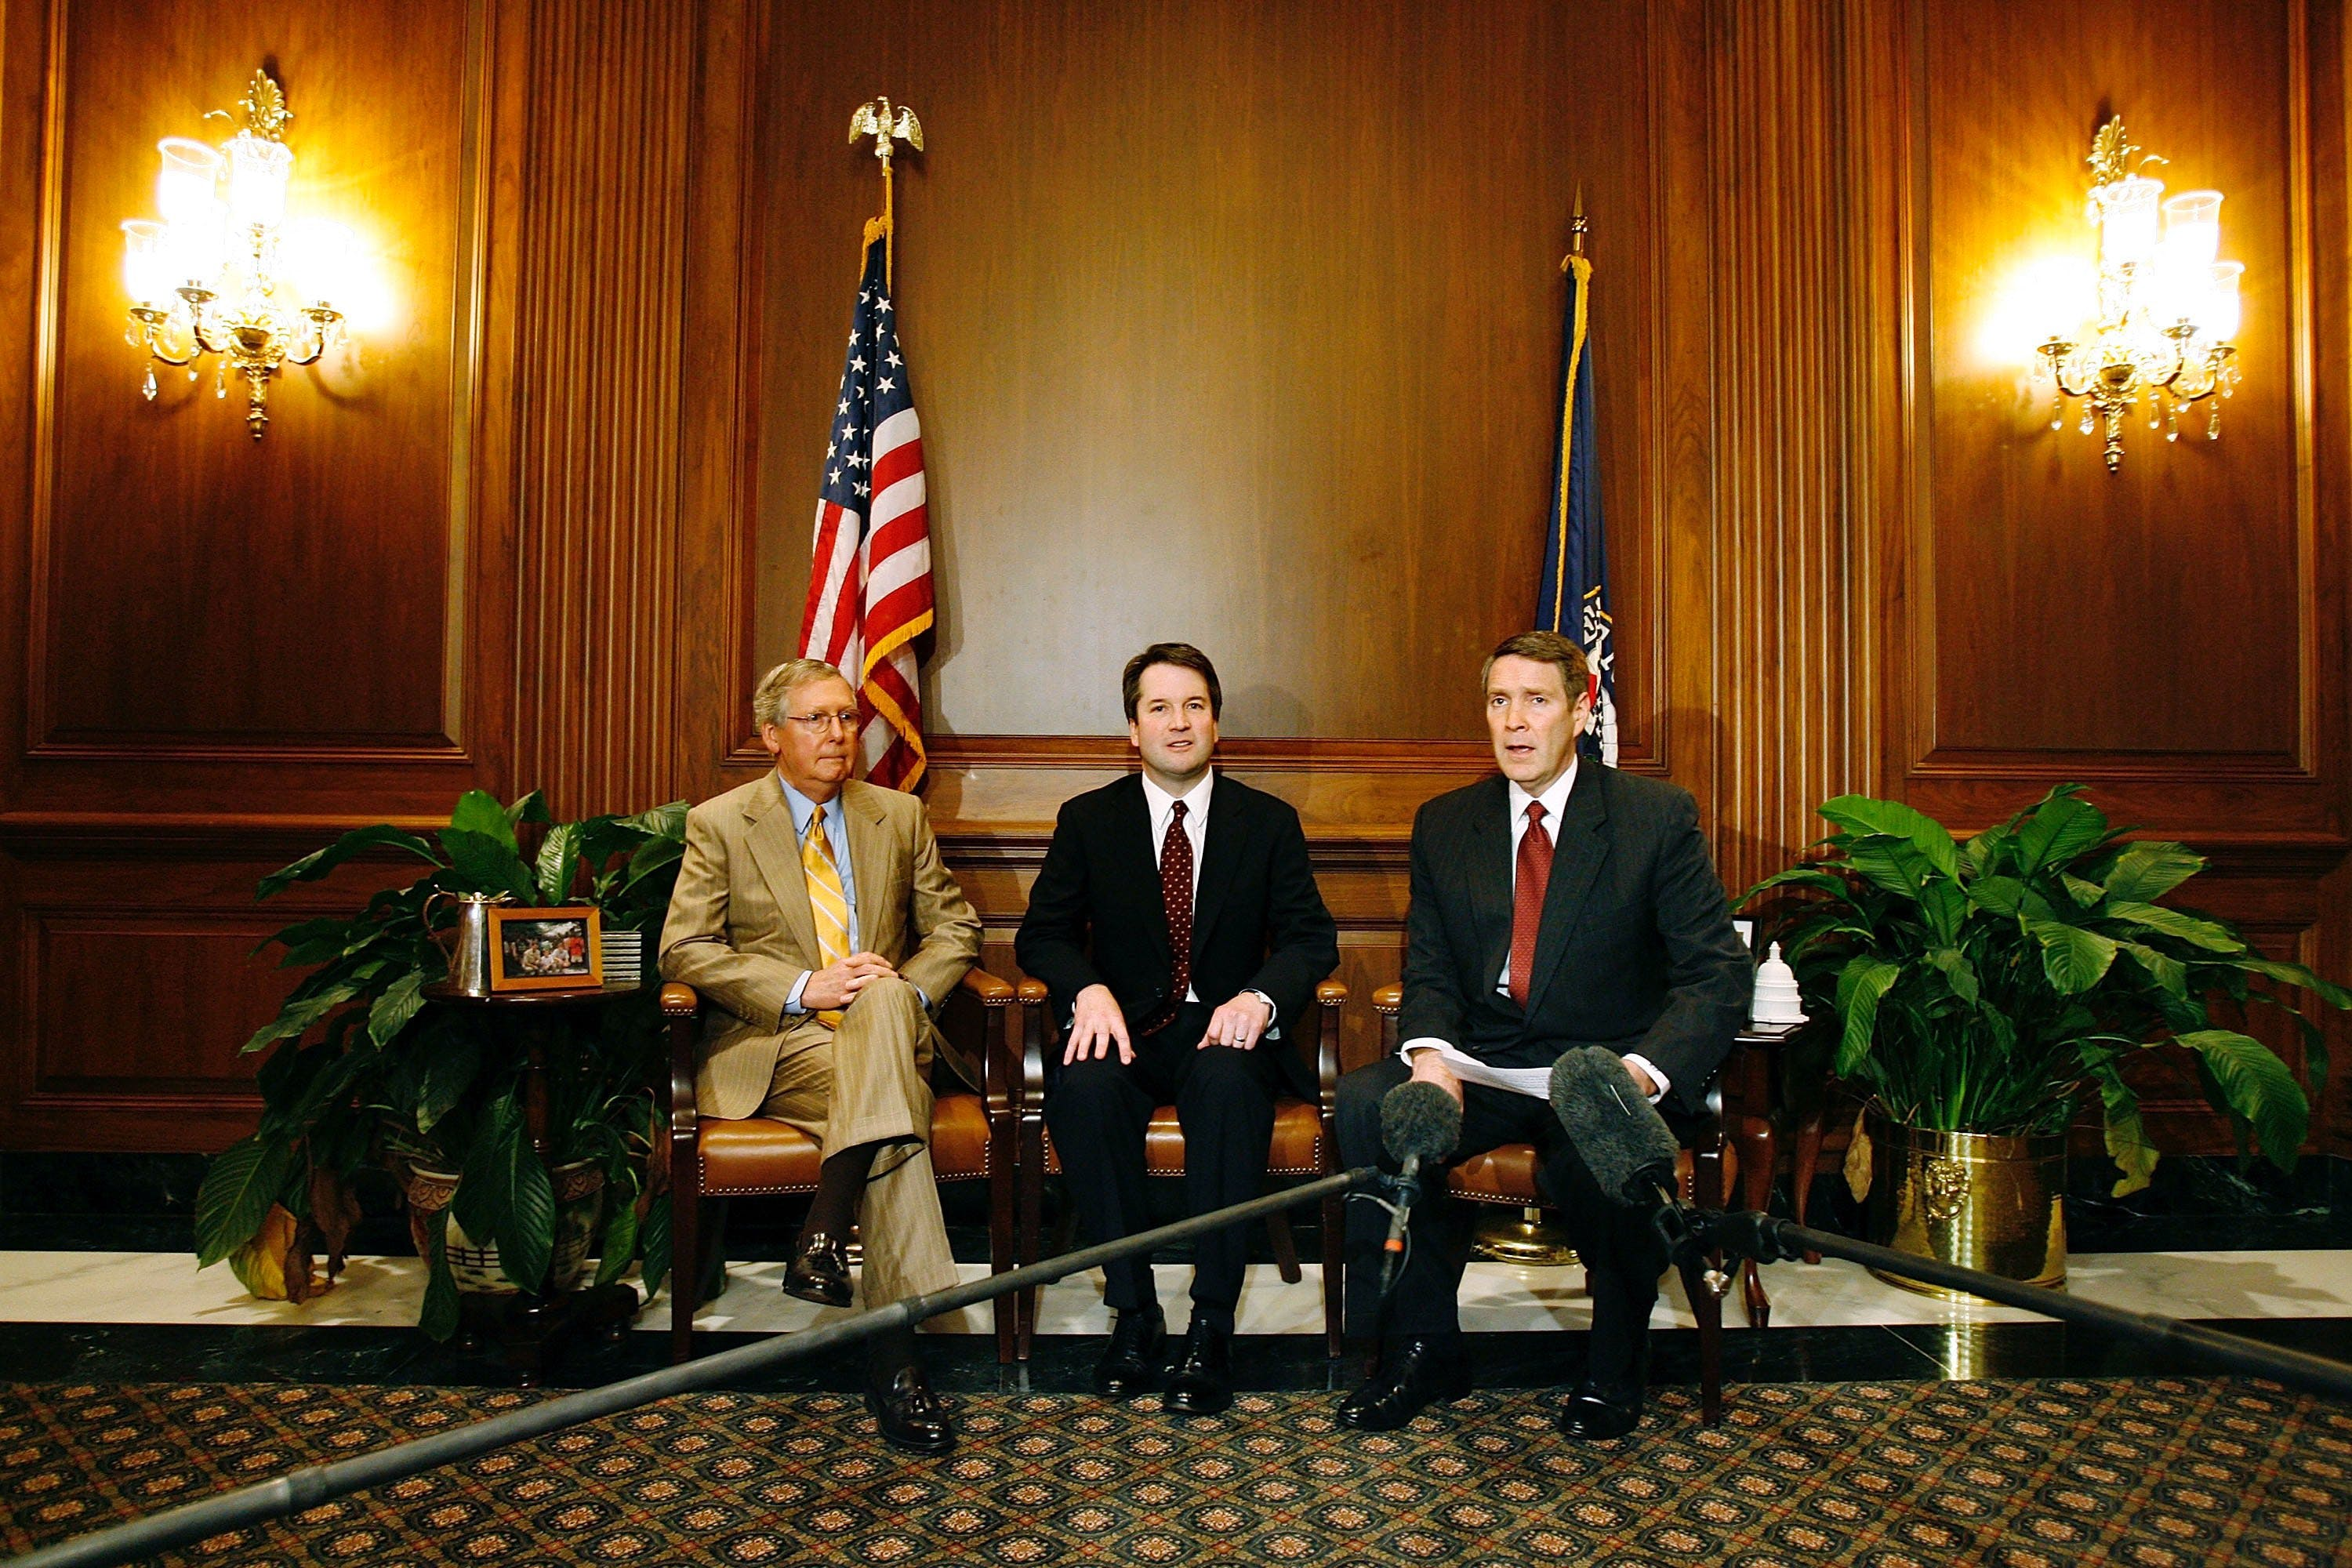 WASHINGTON - MAY 22: (L-R) U.S. Senate Majority Whip Mitch McConnell (R-KY), District of Columbia Circut Court of Appeals nominee Brett Kavanaugh and Senate Majority Leader Bill Frist (R-TN) hold a news conference in the Capitol May 22, 2006 in Washington, DC. Frist said that Kavanaugh deserves a straight up-or-down vote in the Senate. (Photo by Chip Somodevilla/Getty Images)